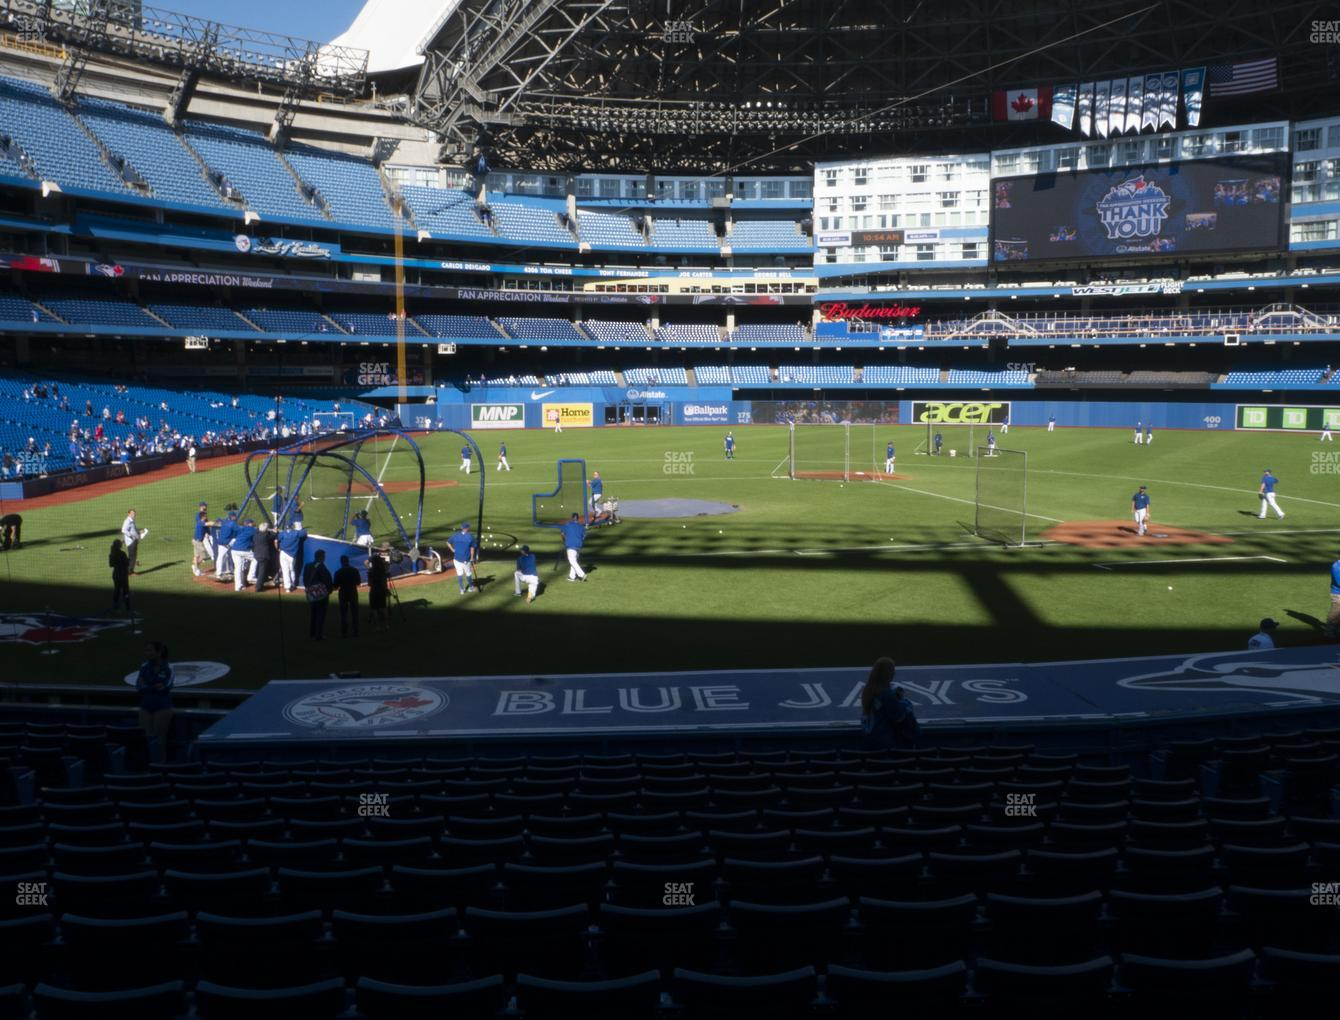 Toronto Blue Jays at Rogers Centre Section 119 R View